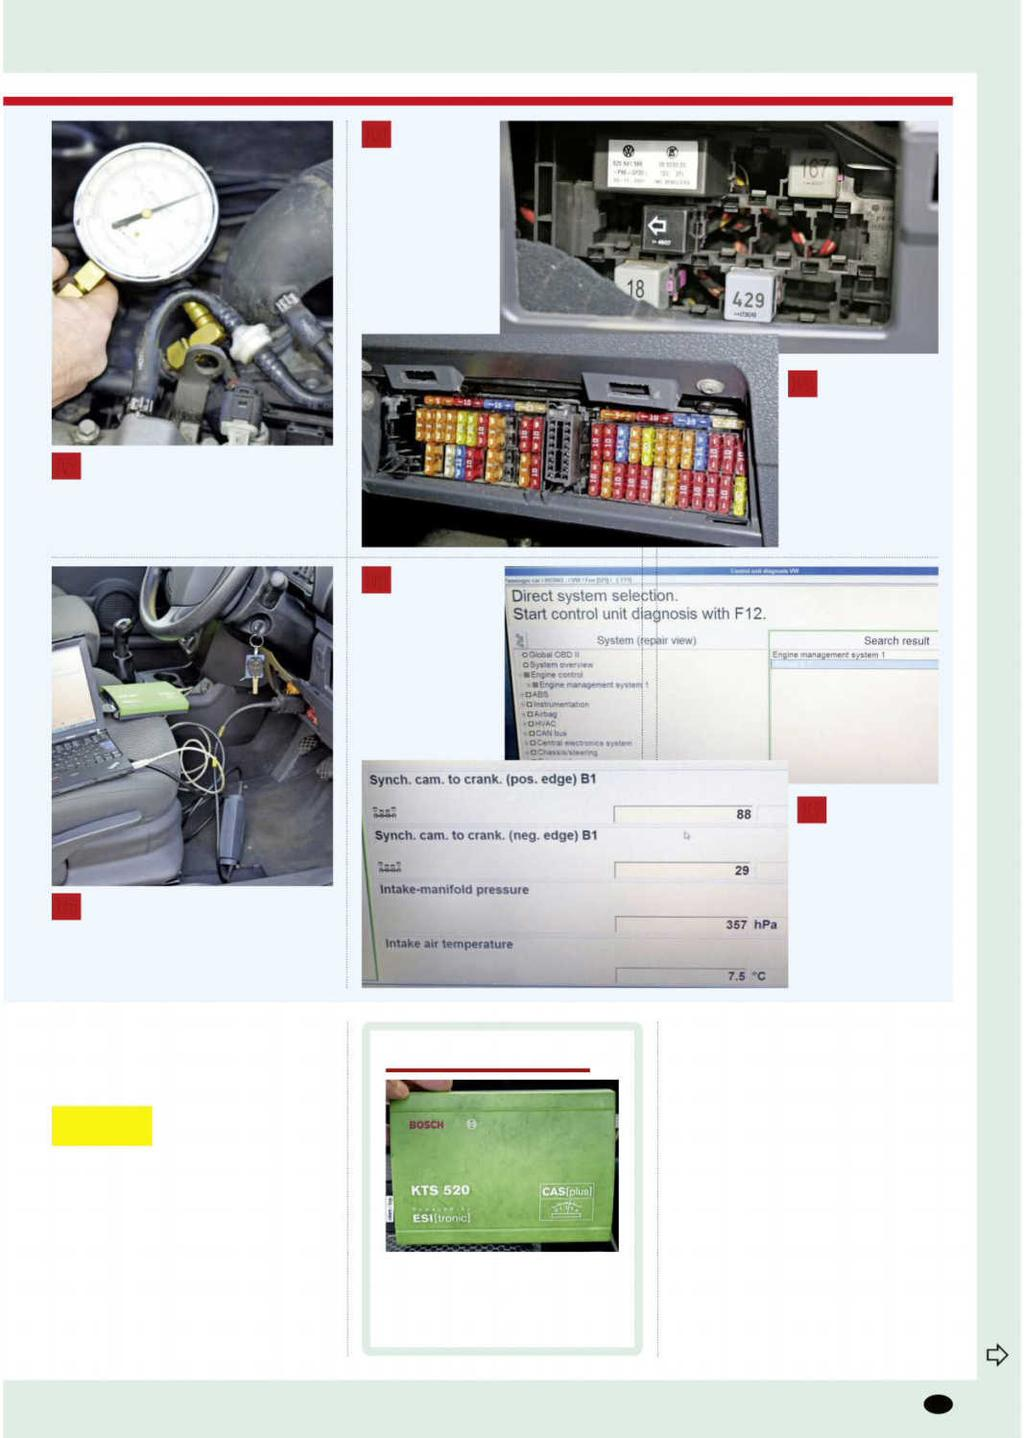 Win Get Your Engine Running Healthier Tailgate Respray Diesel 1995 Tvr Chimaera Ignition Fuse Box Diagram Electronic Diagnostics Volkswagen Fox 12 This Important 13 Collection Of Electrical Relays Is Positioned Beneath A